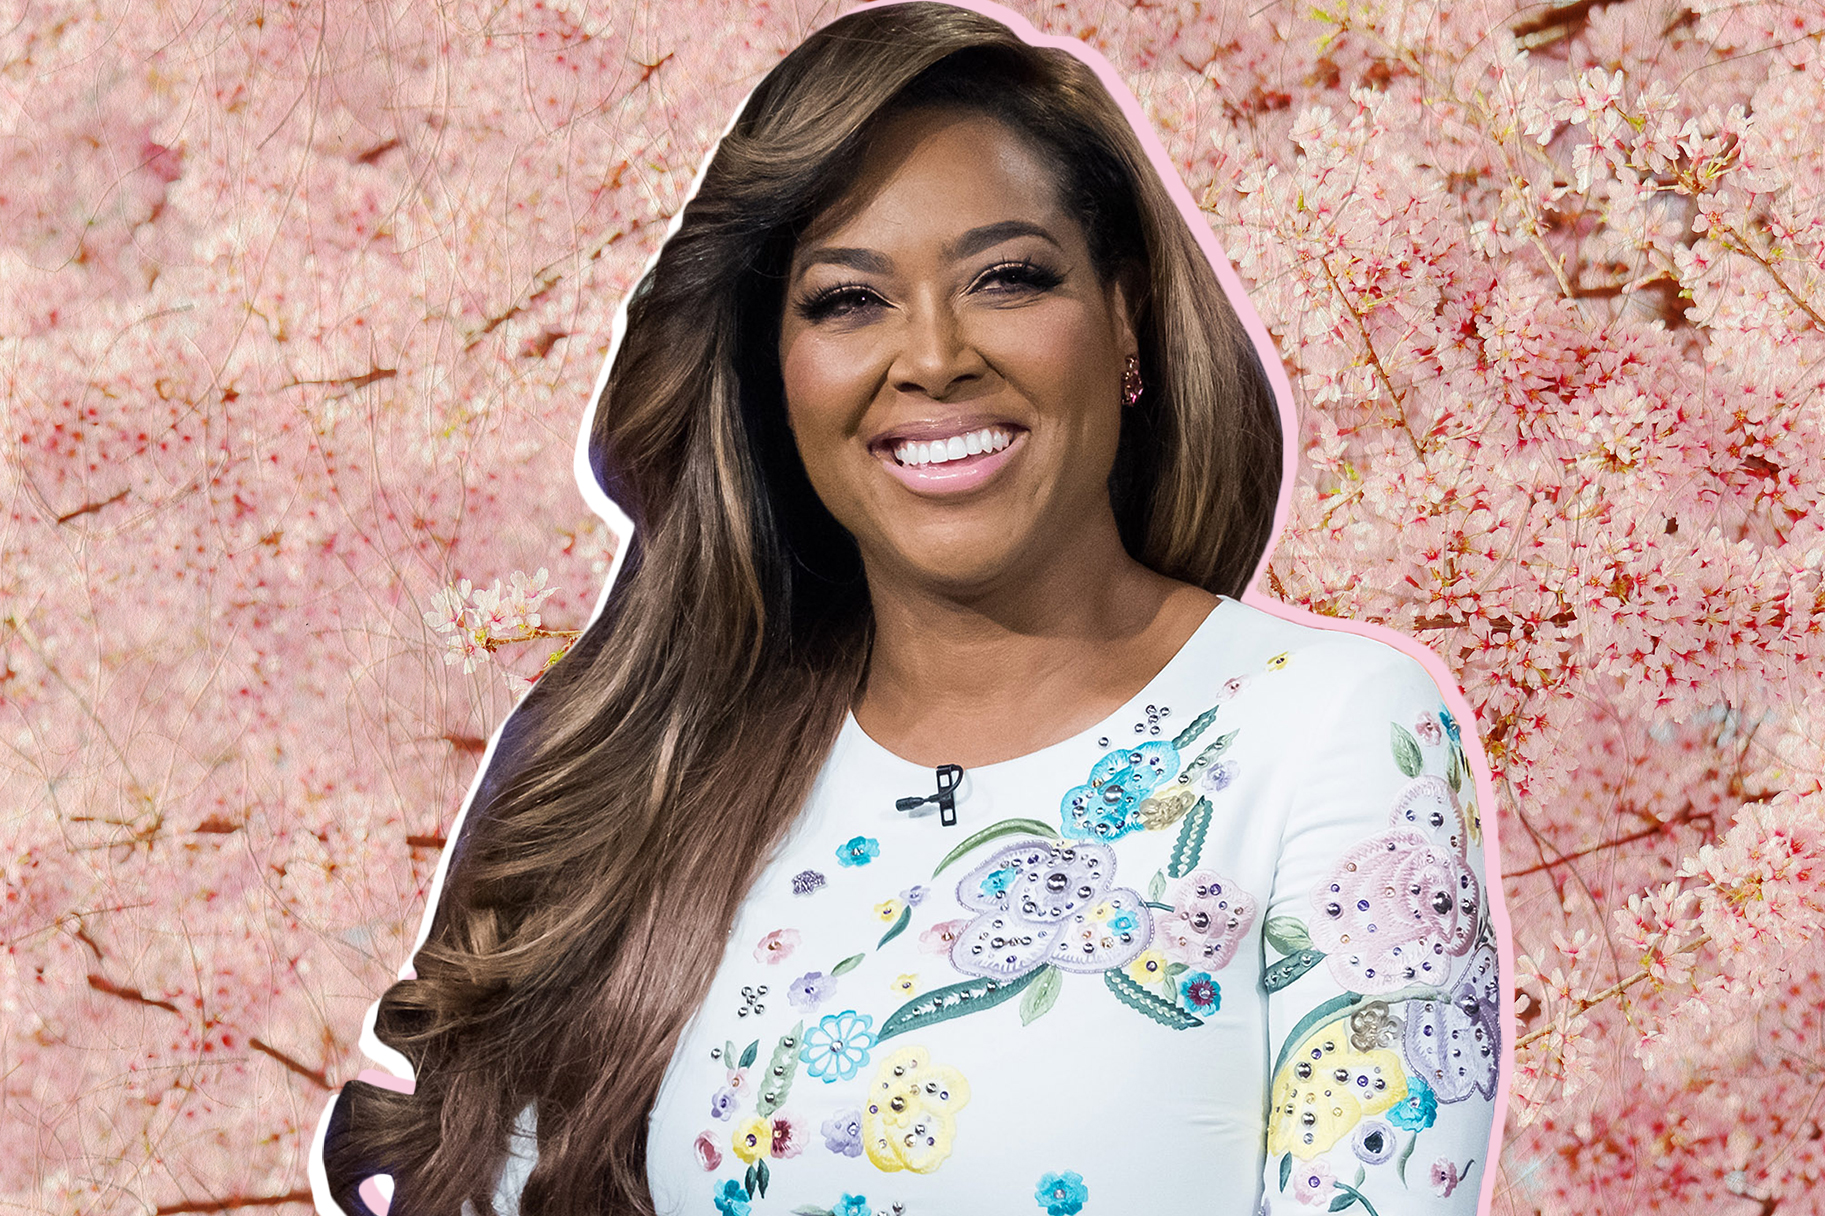 Kenya Moore's Latest Photo With Smiling Brooklyn Brings A Smile On Fans' Faces